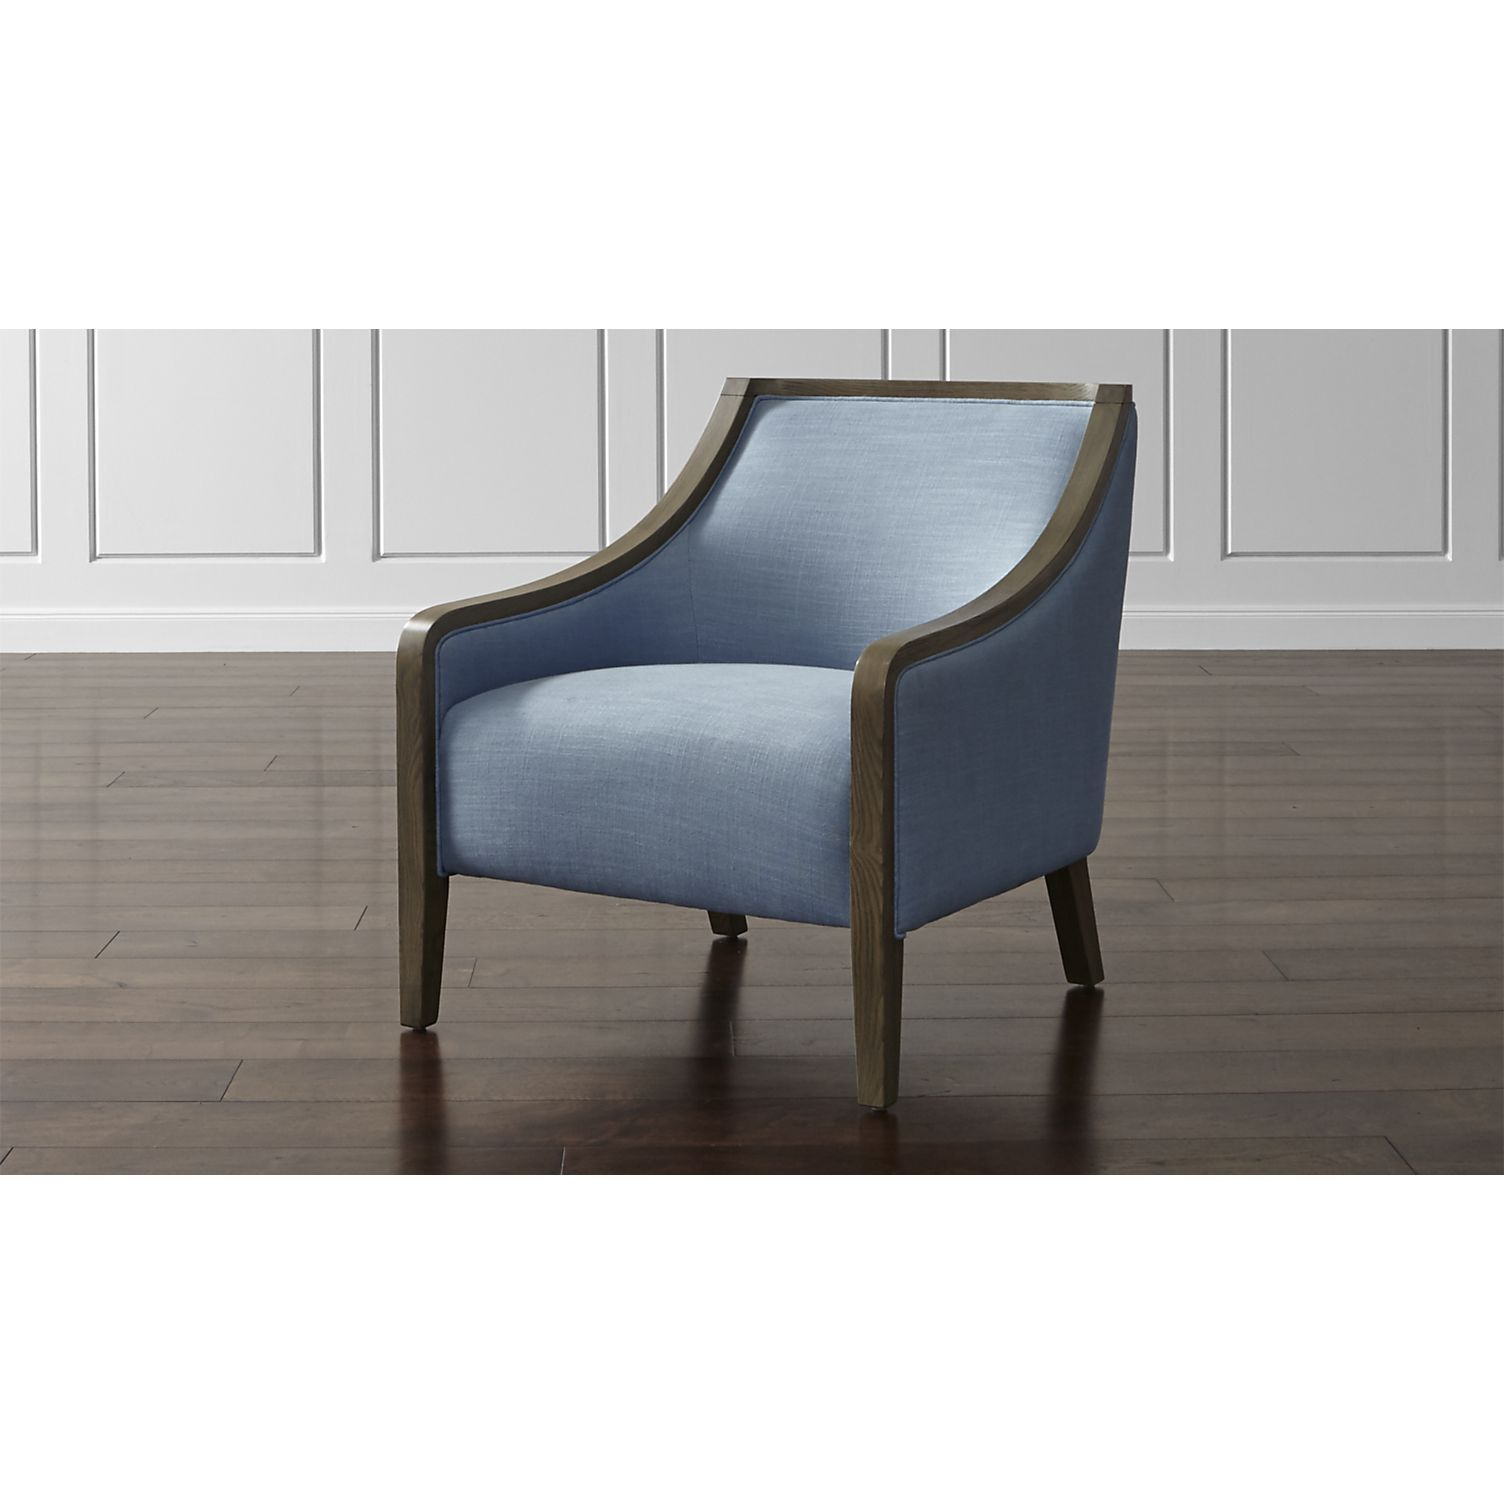 Find Swivel Rocking And Accent Chairs In Leather And Upholstery